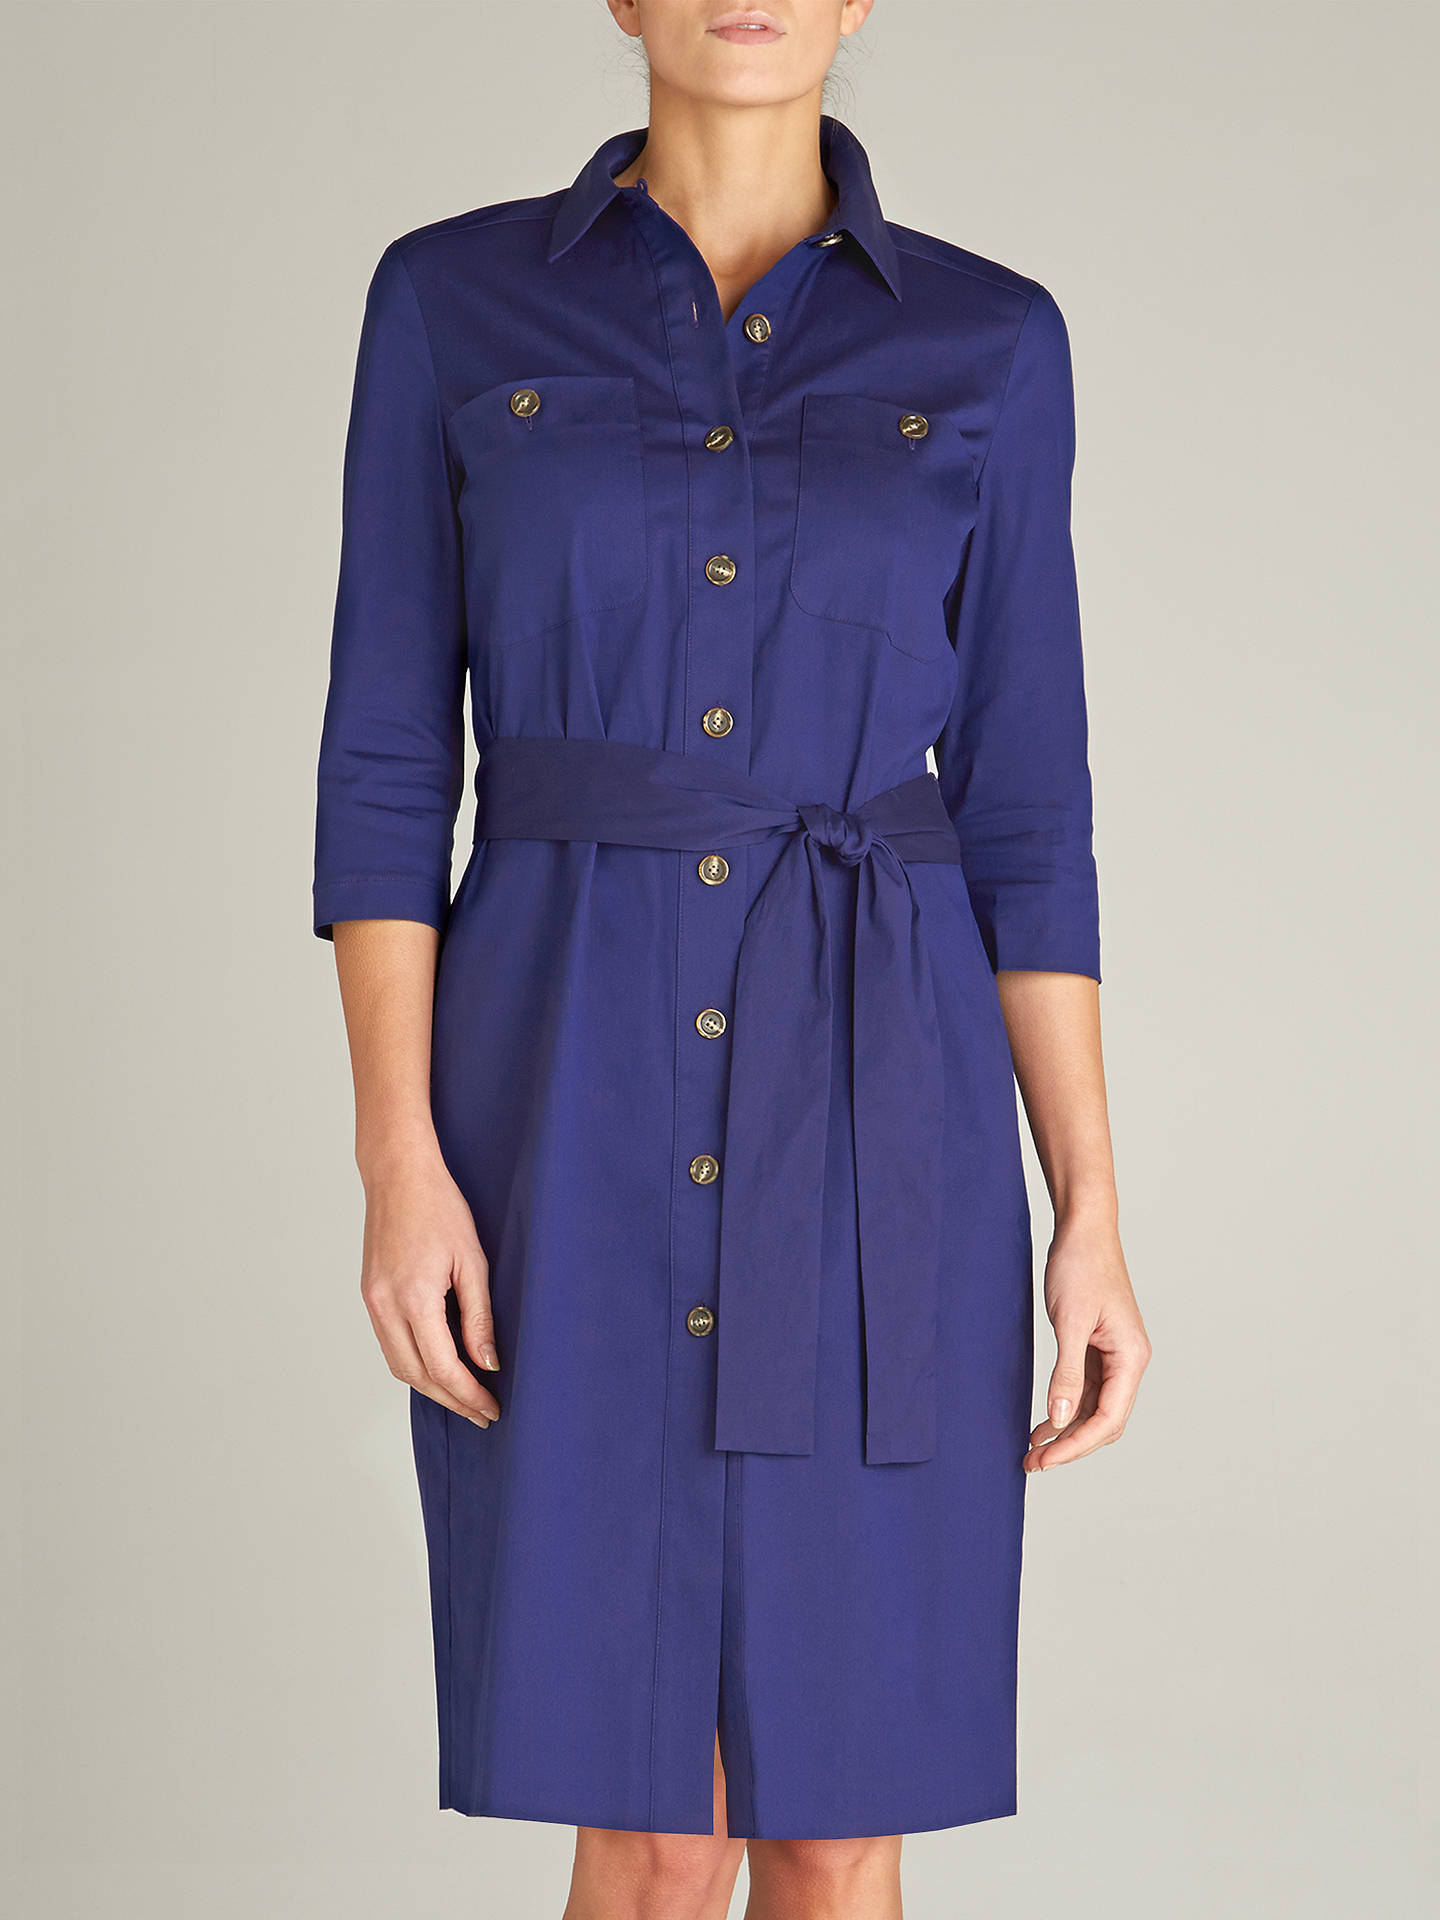 Winser London Poplin Shirt Dress At John Lewis Partners